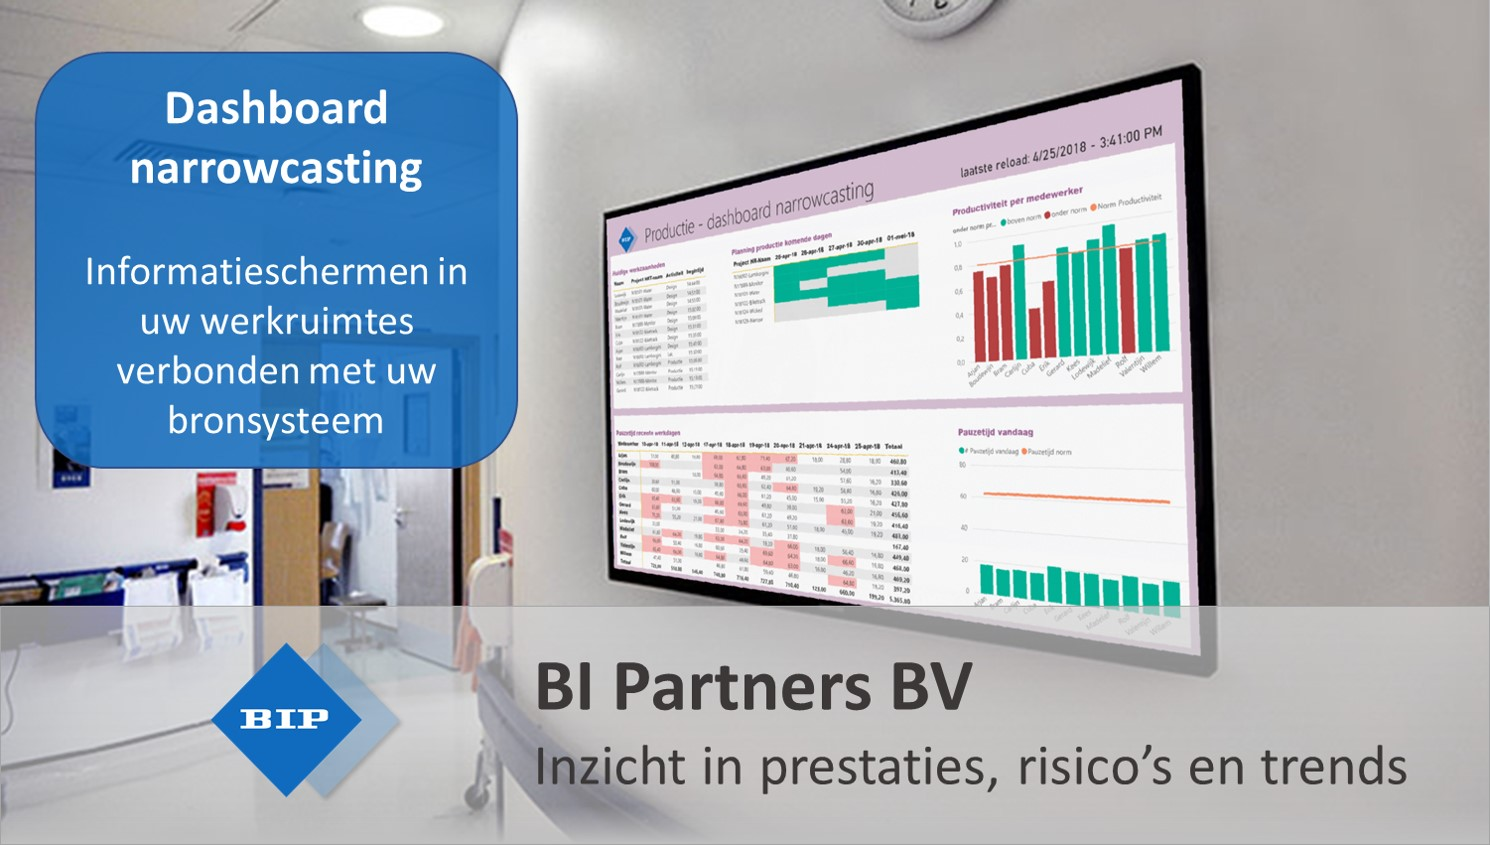 BI Partners introduceert Dashboard Narrowcasting